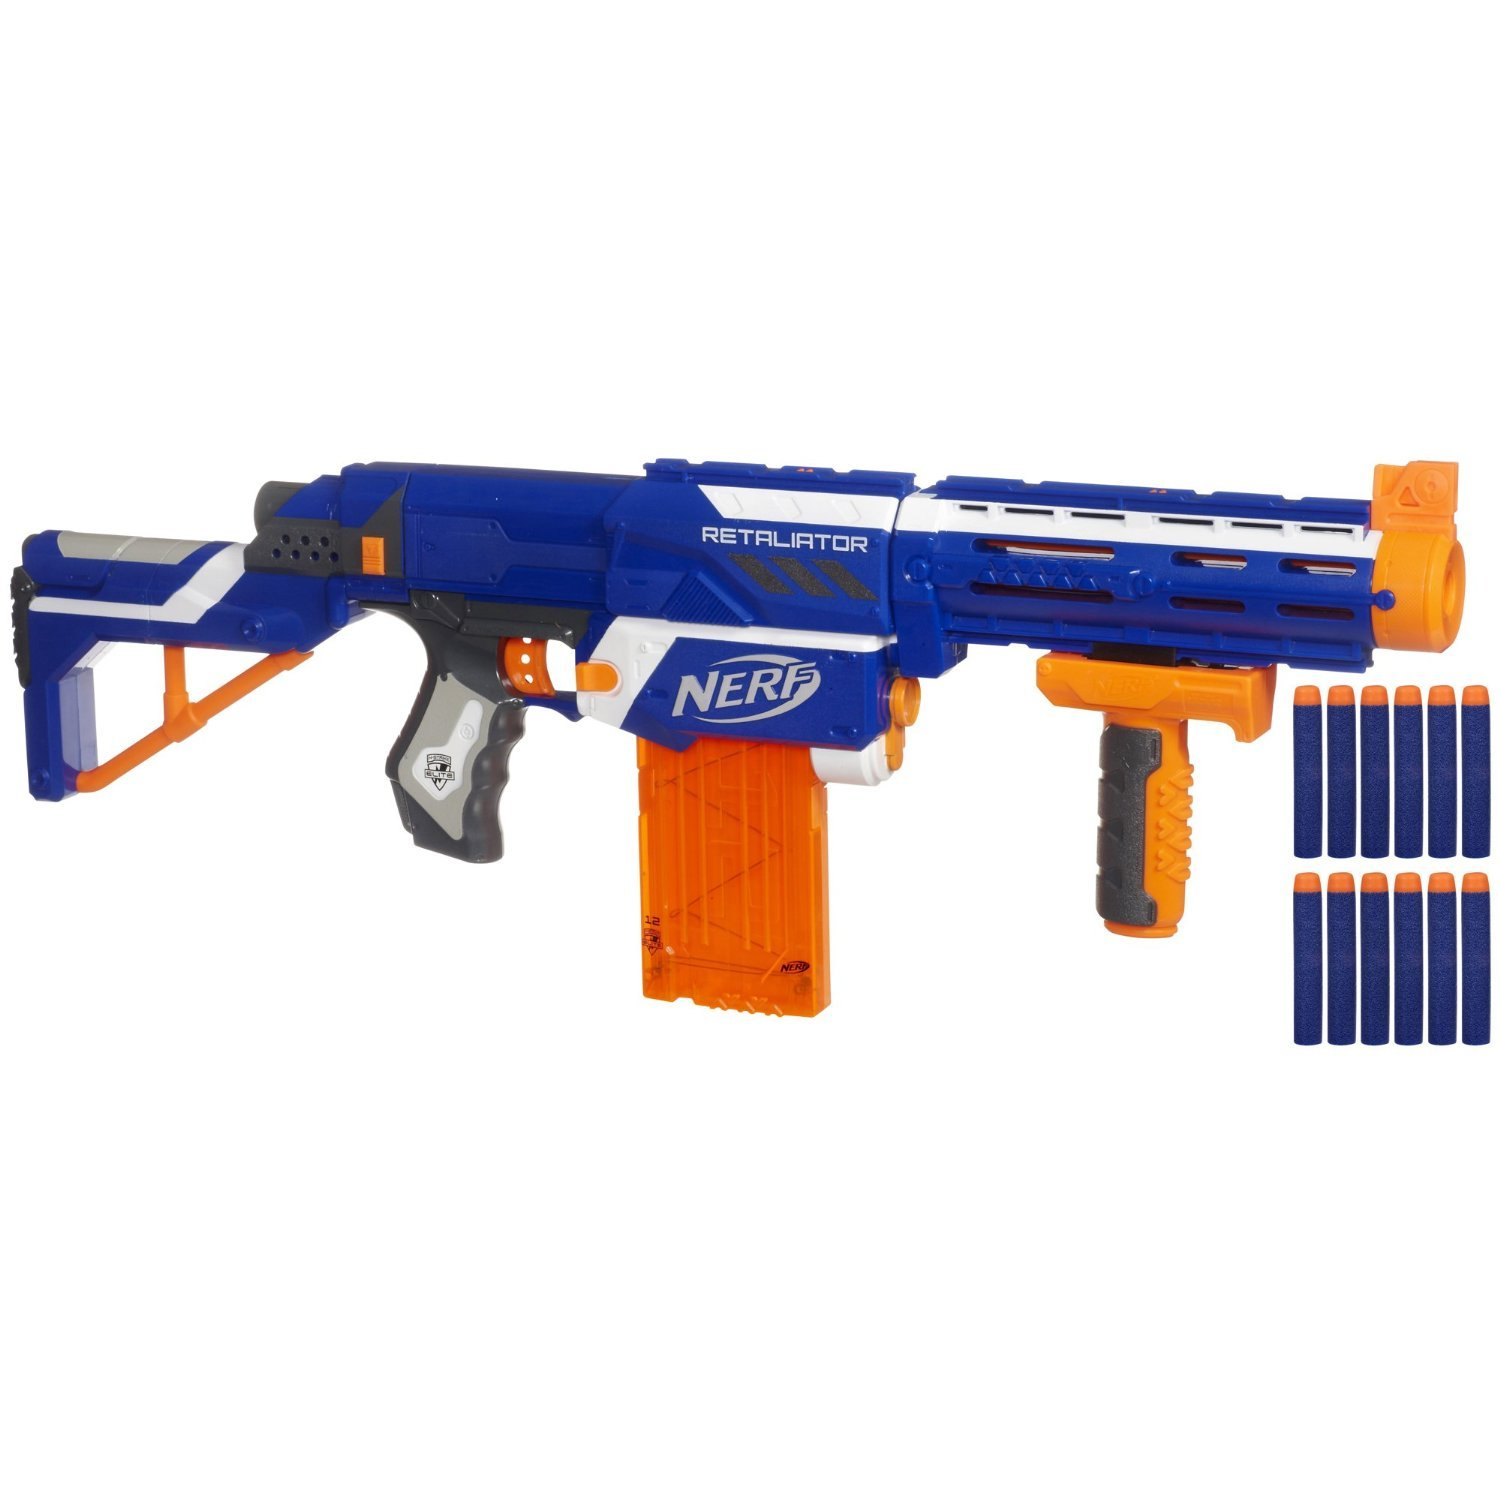 Amazon Nerf N strike Elite Retaliator Colors May Vary 4 Blasters in 1 3 Interchangeable Parts Fires up to 90 Feet Trademarks Hasbro Played